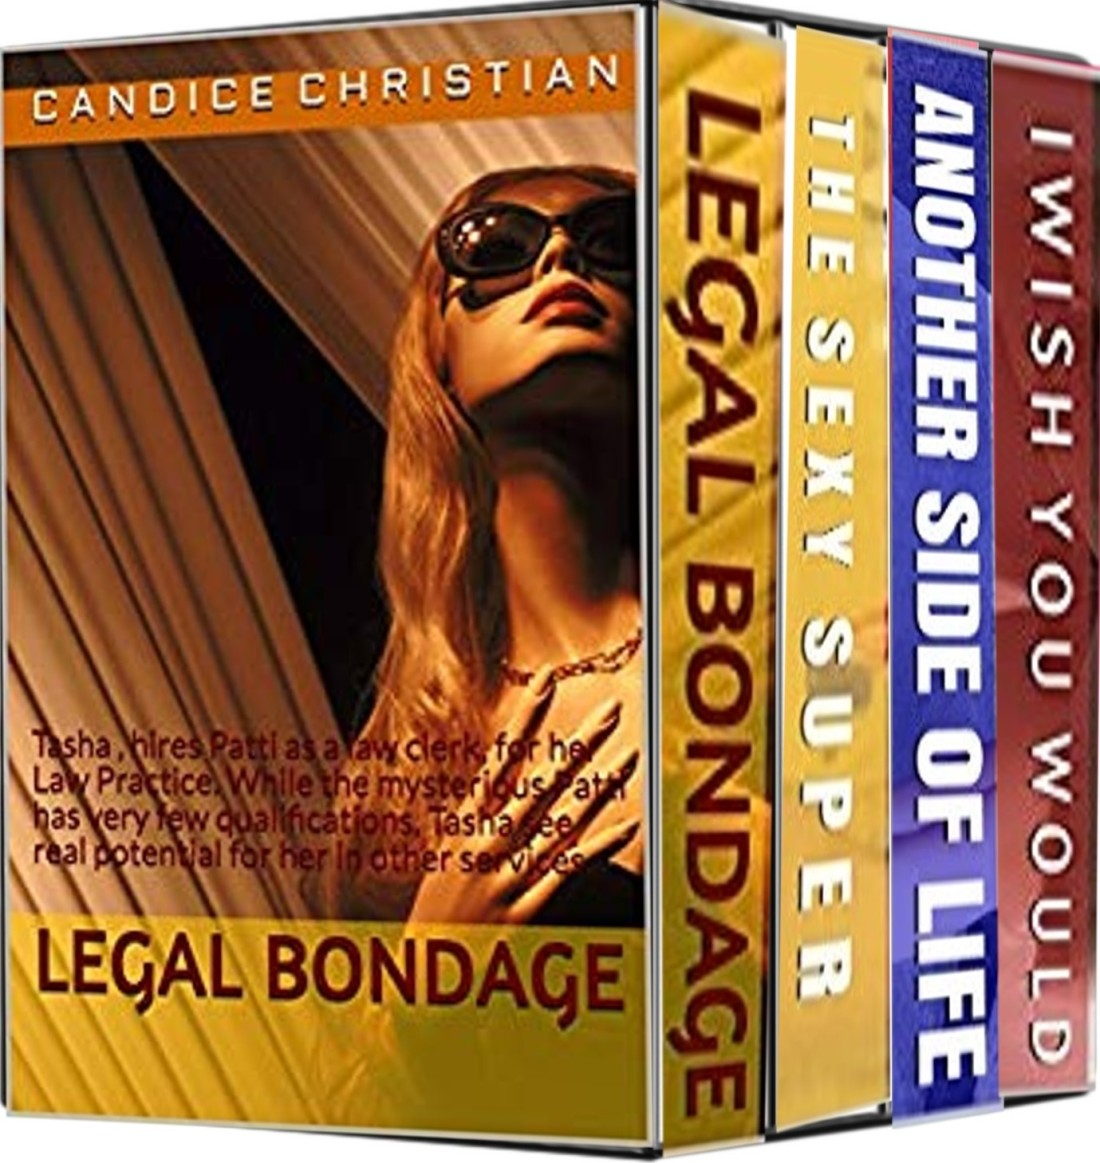 v2legal bondage bundle